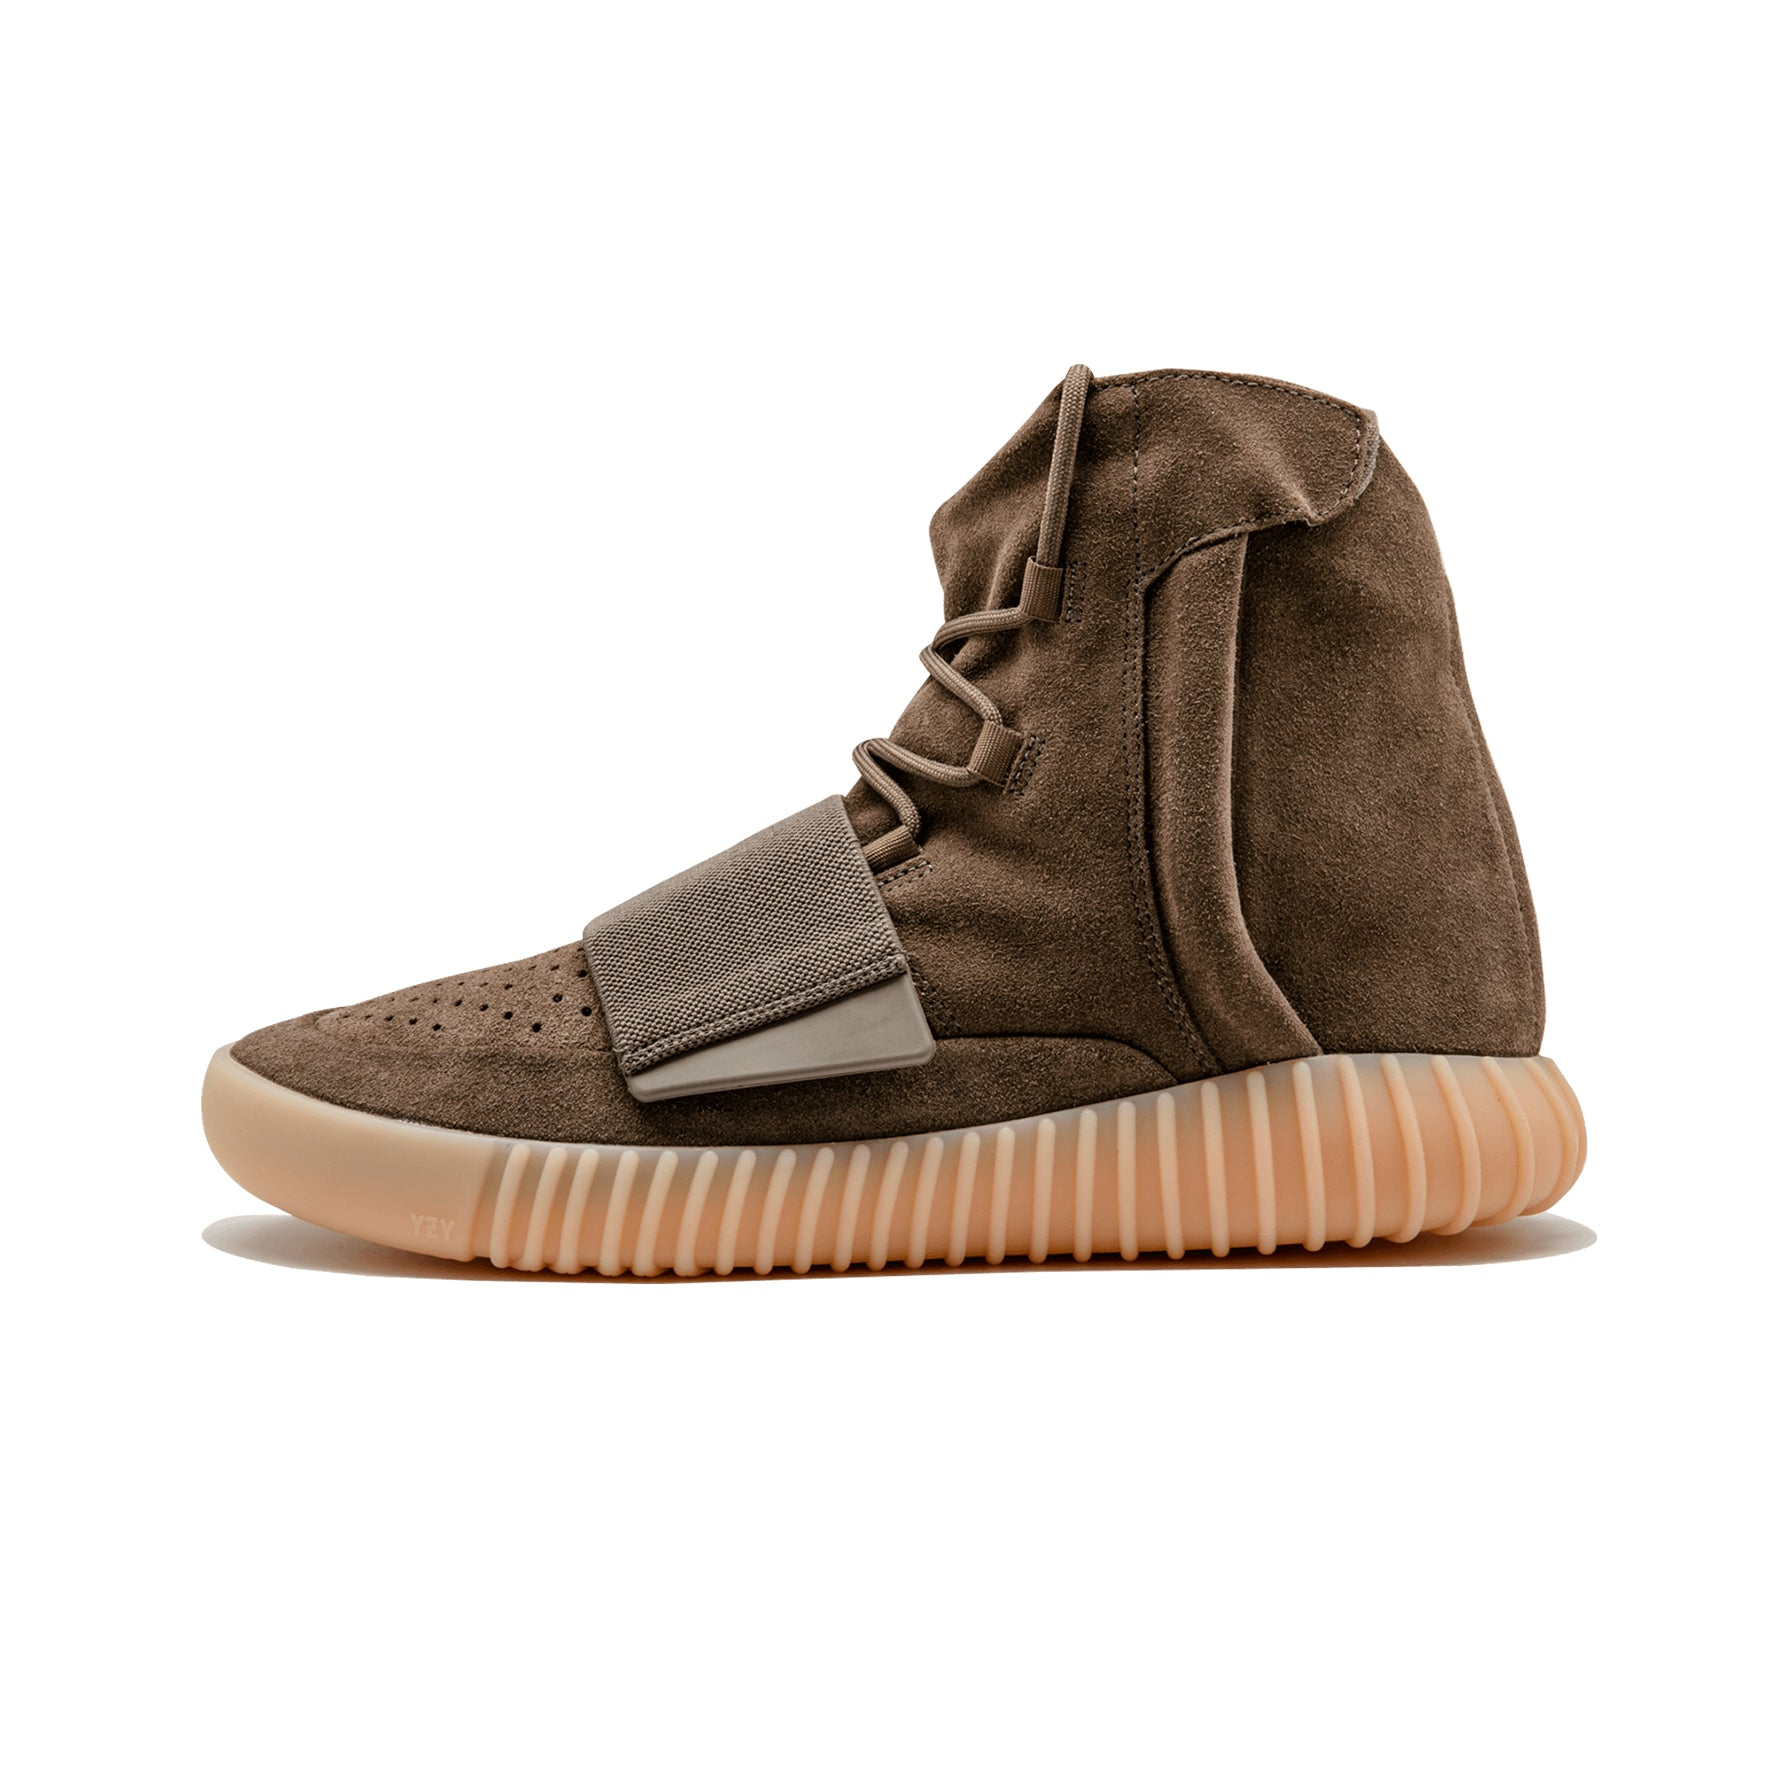 Adidas Yeezy Boost 750 Chocolate - BY2456 - Sneakersfromfrance